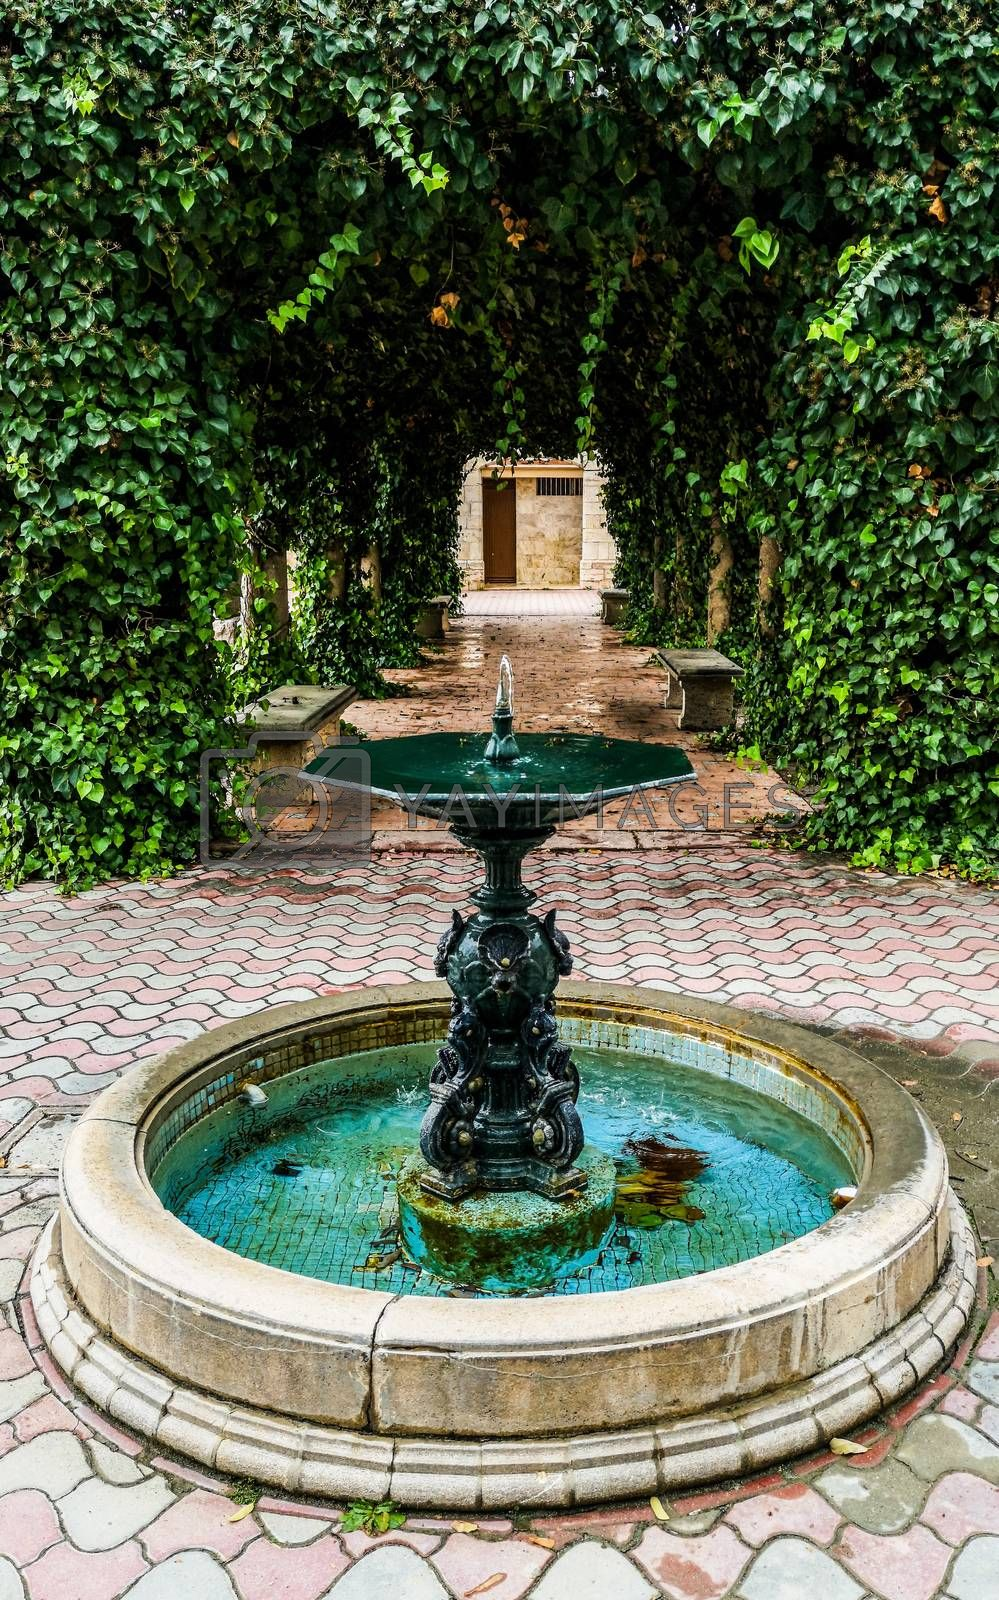 Ancient fountain with a structure covered with plants by Barriolo82